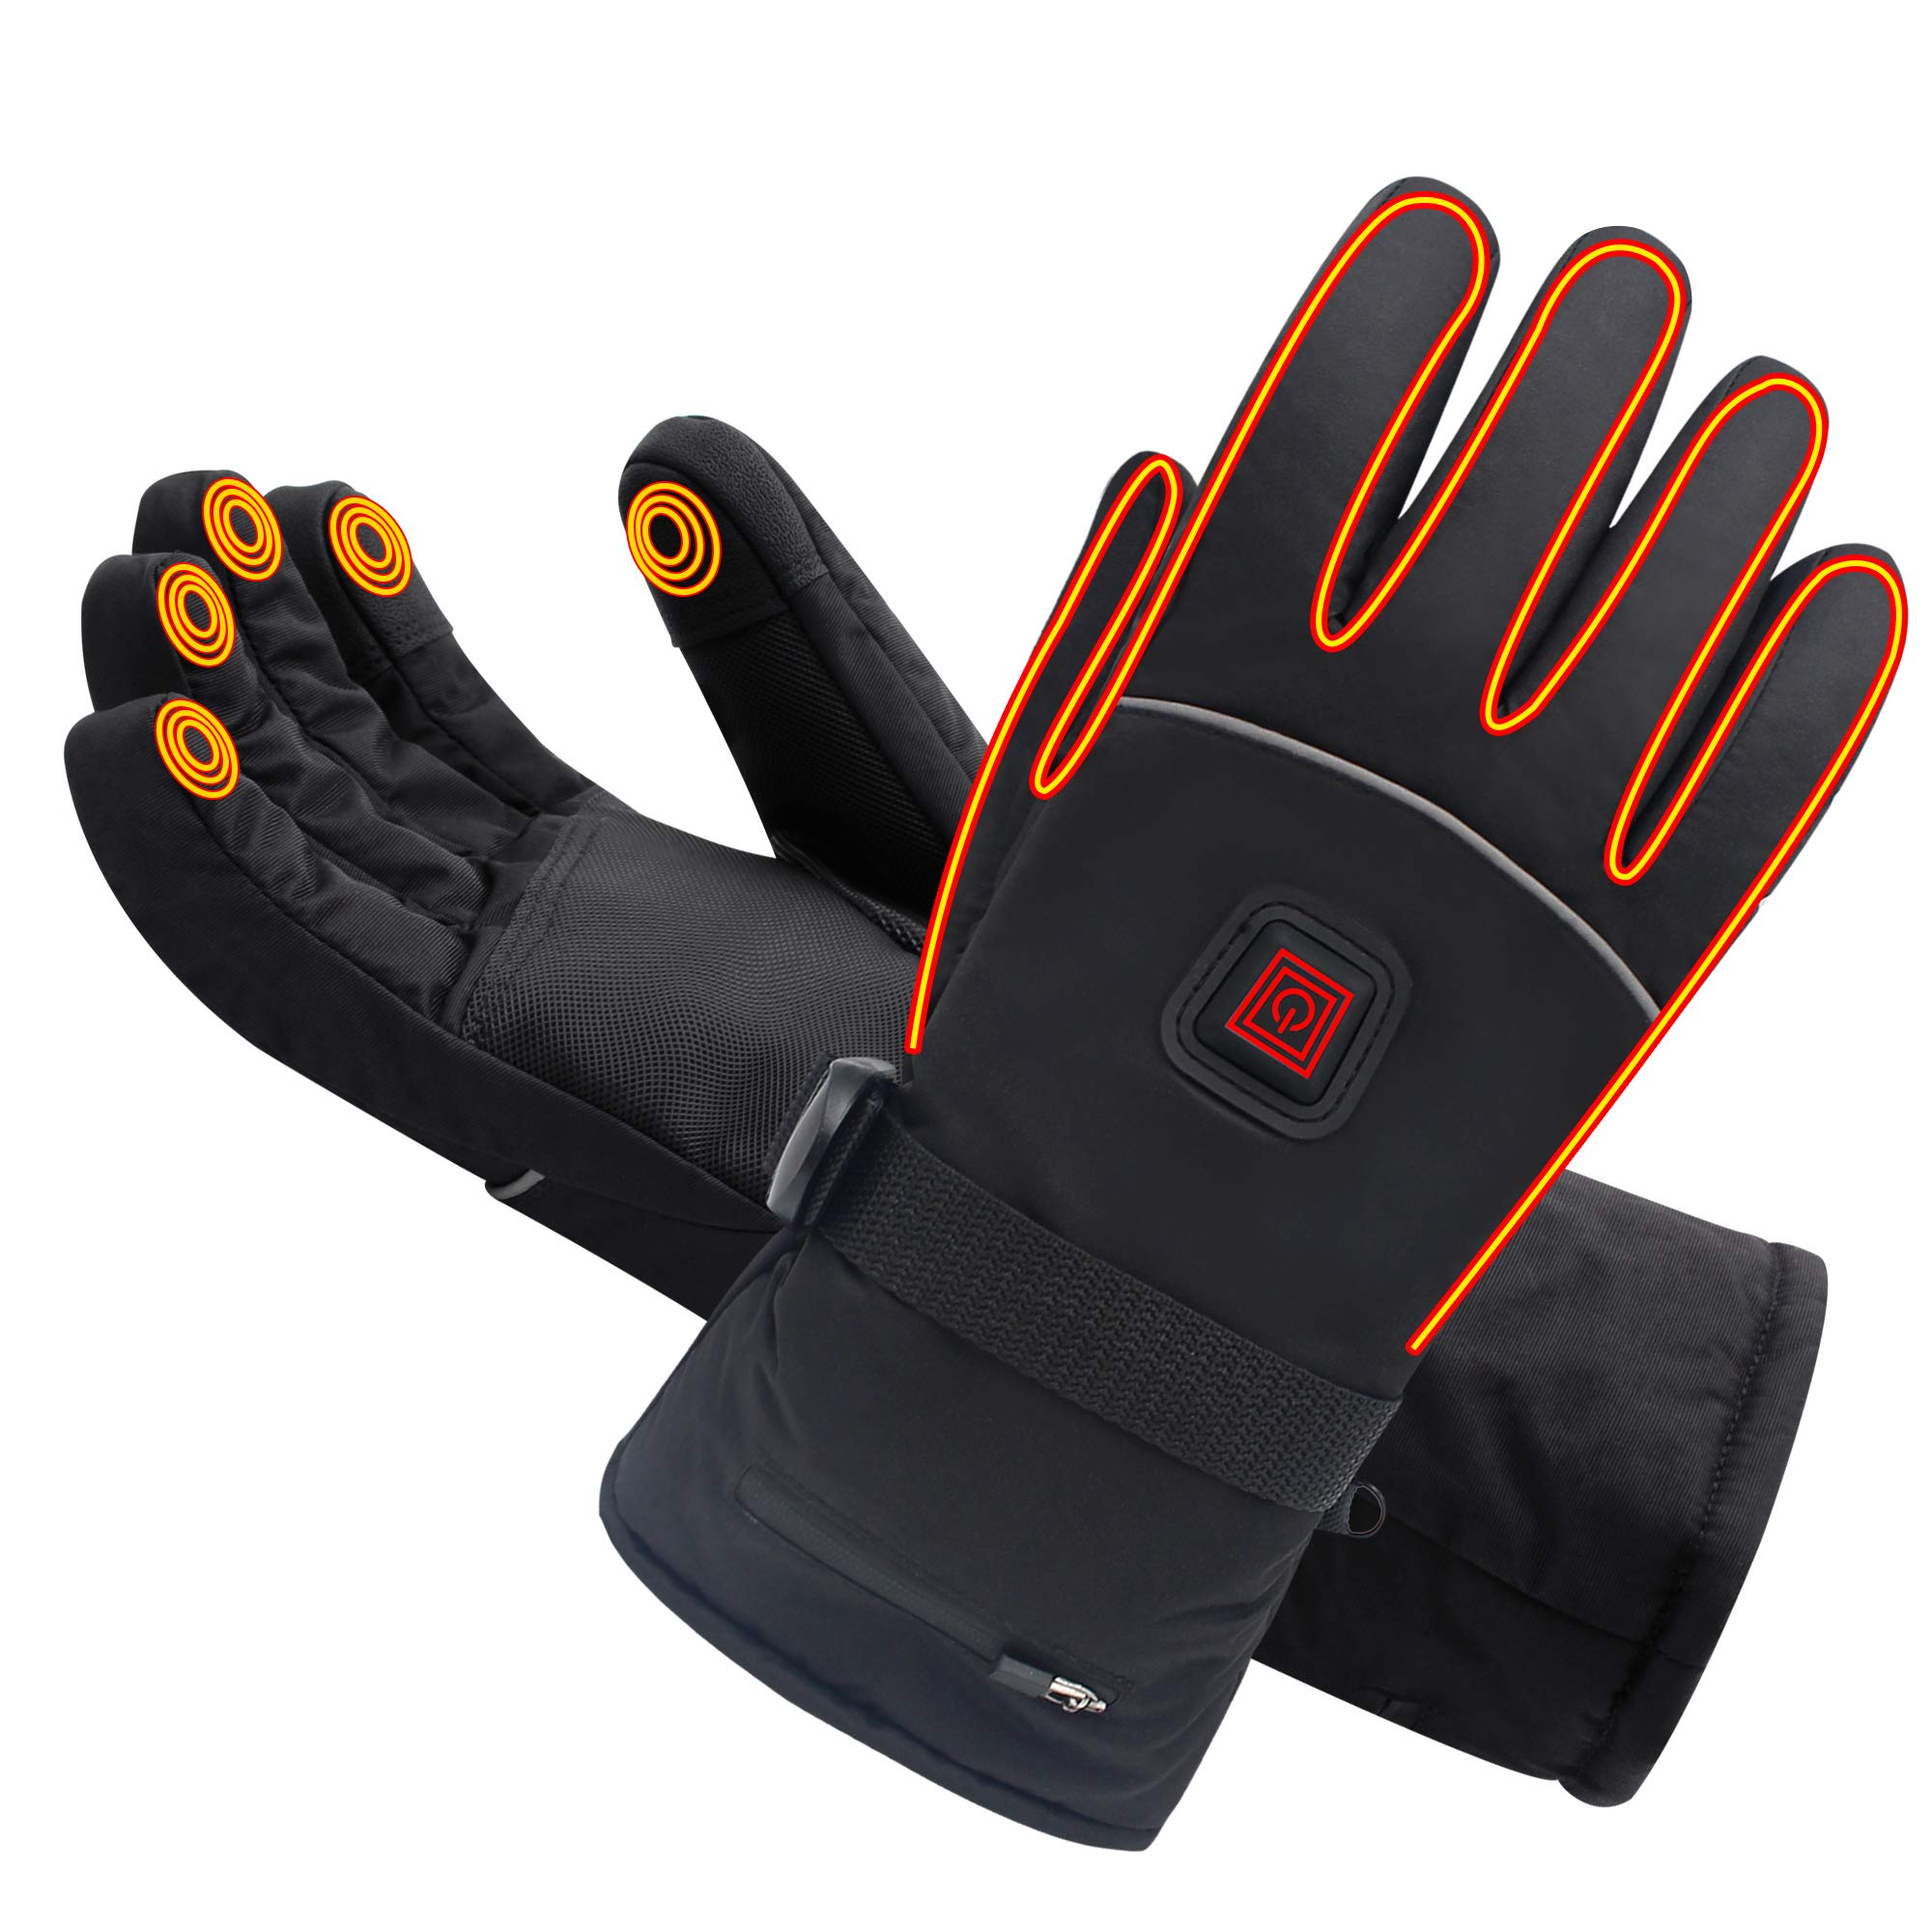 Spring Heated Gloves with Rechargeable Battery Heated for Men and Women,Waterproof Thermal Insulation Gloves Winter Warm Gloves for Skiing Hiking Mountaineering (7.4V-L) by SPRING SHOP